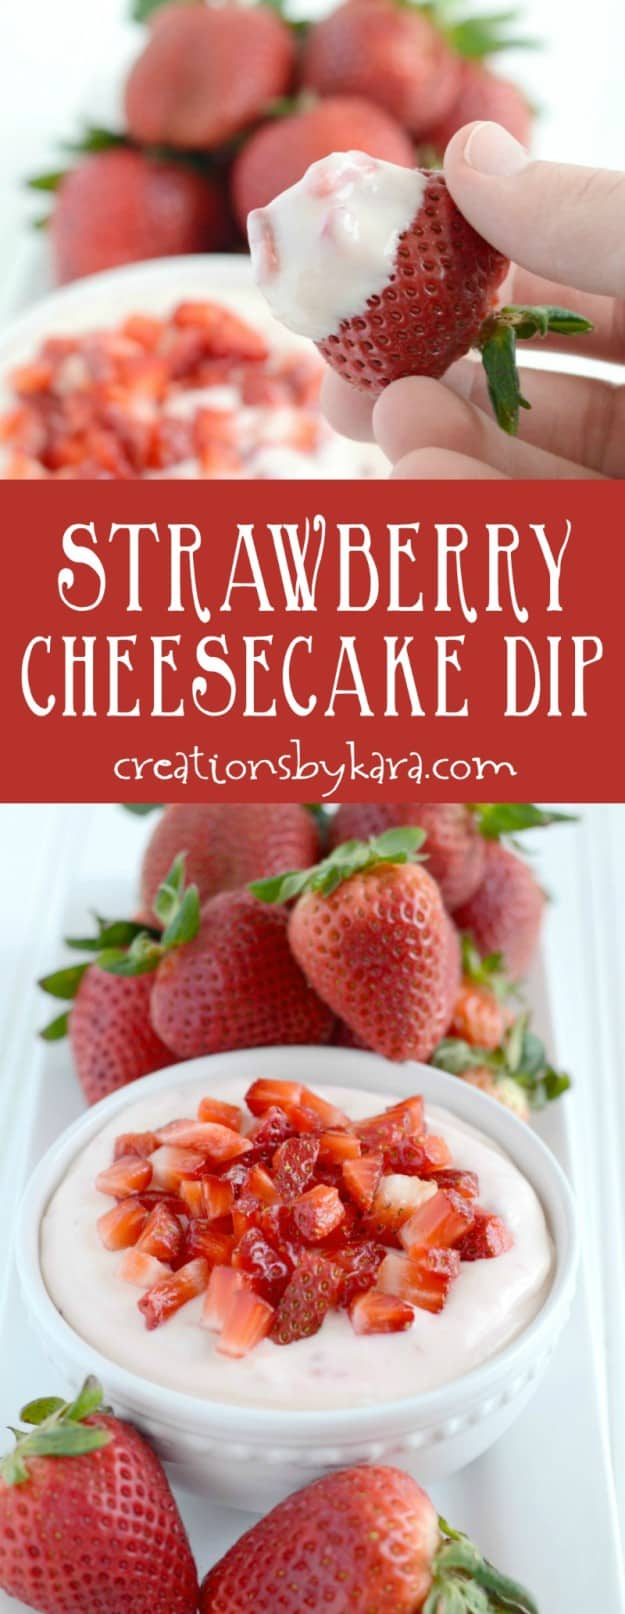 You can whip up this Strawberry Cheesecake Dip in 5 minutes, and it is simply irresistible!